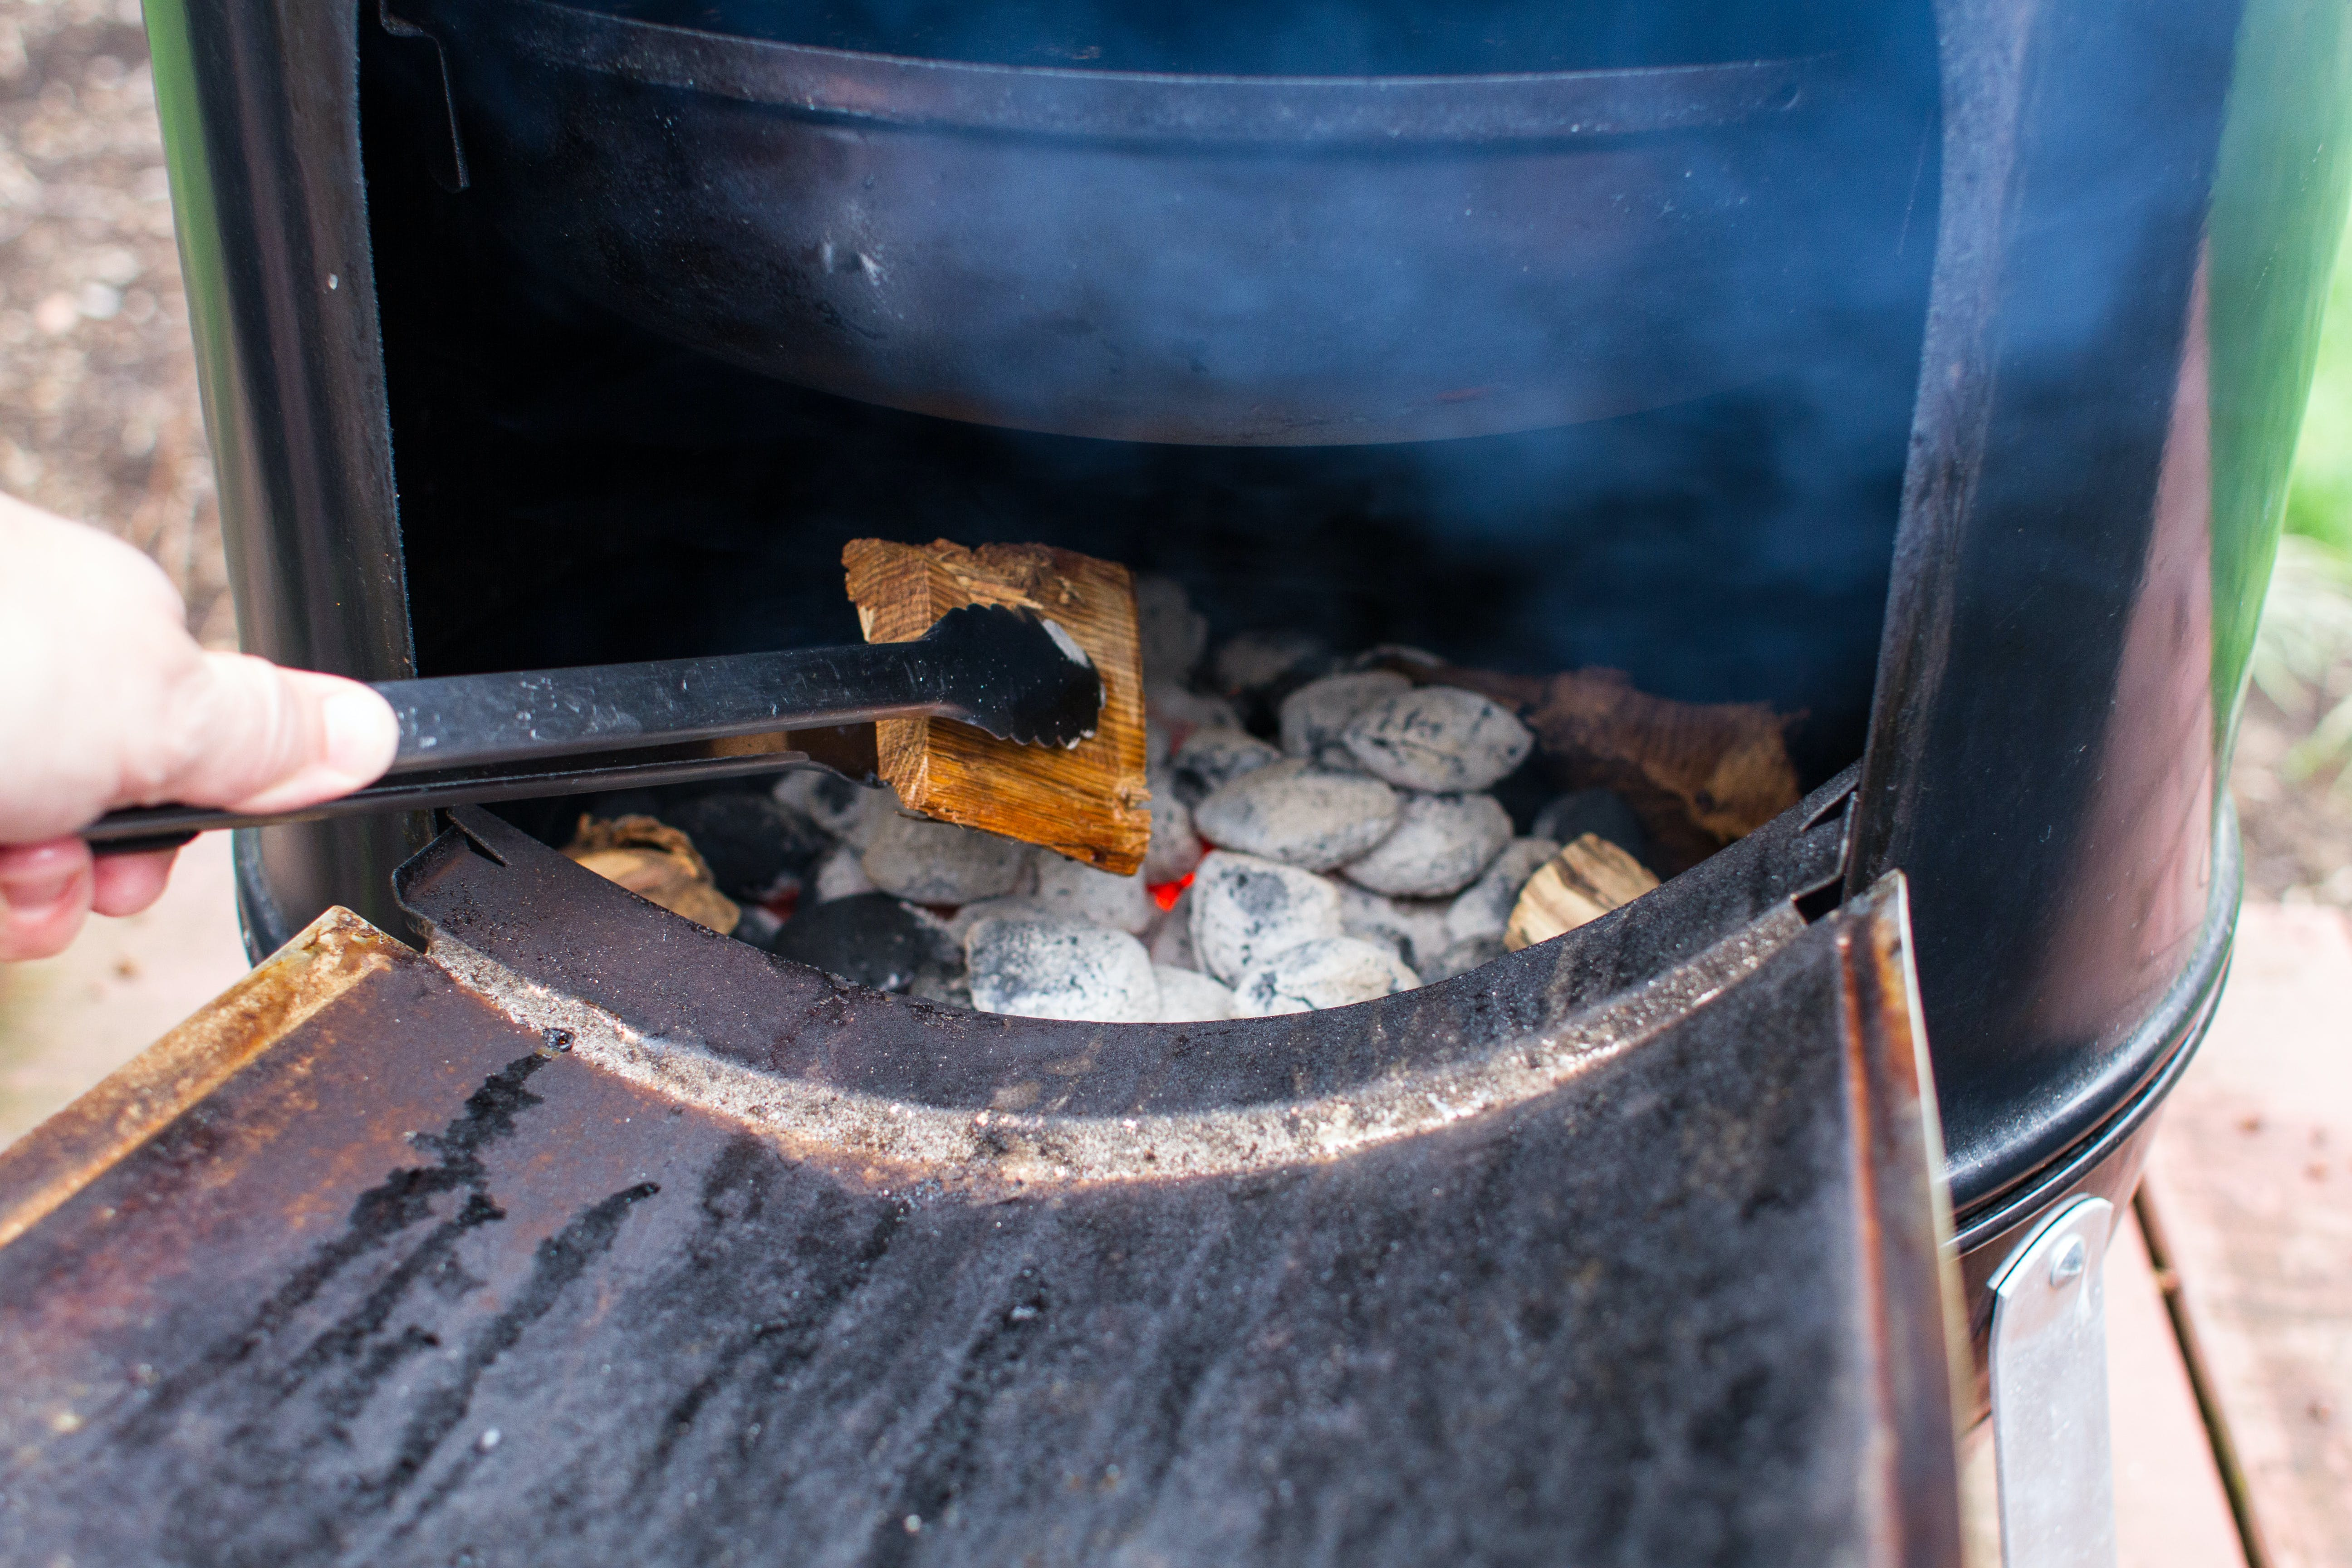 2019 01 Game Day Week Lang How To Smoke Winning Game Day Pulled Pork Sandwiches Photo Adding Wood To Wsm 12